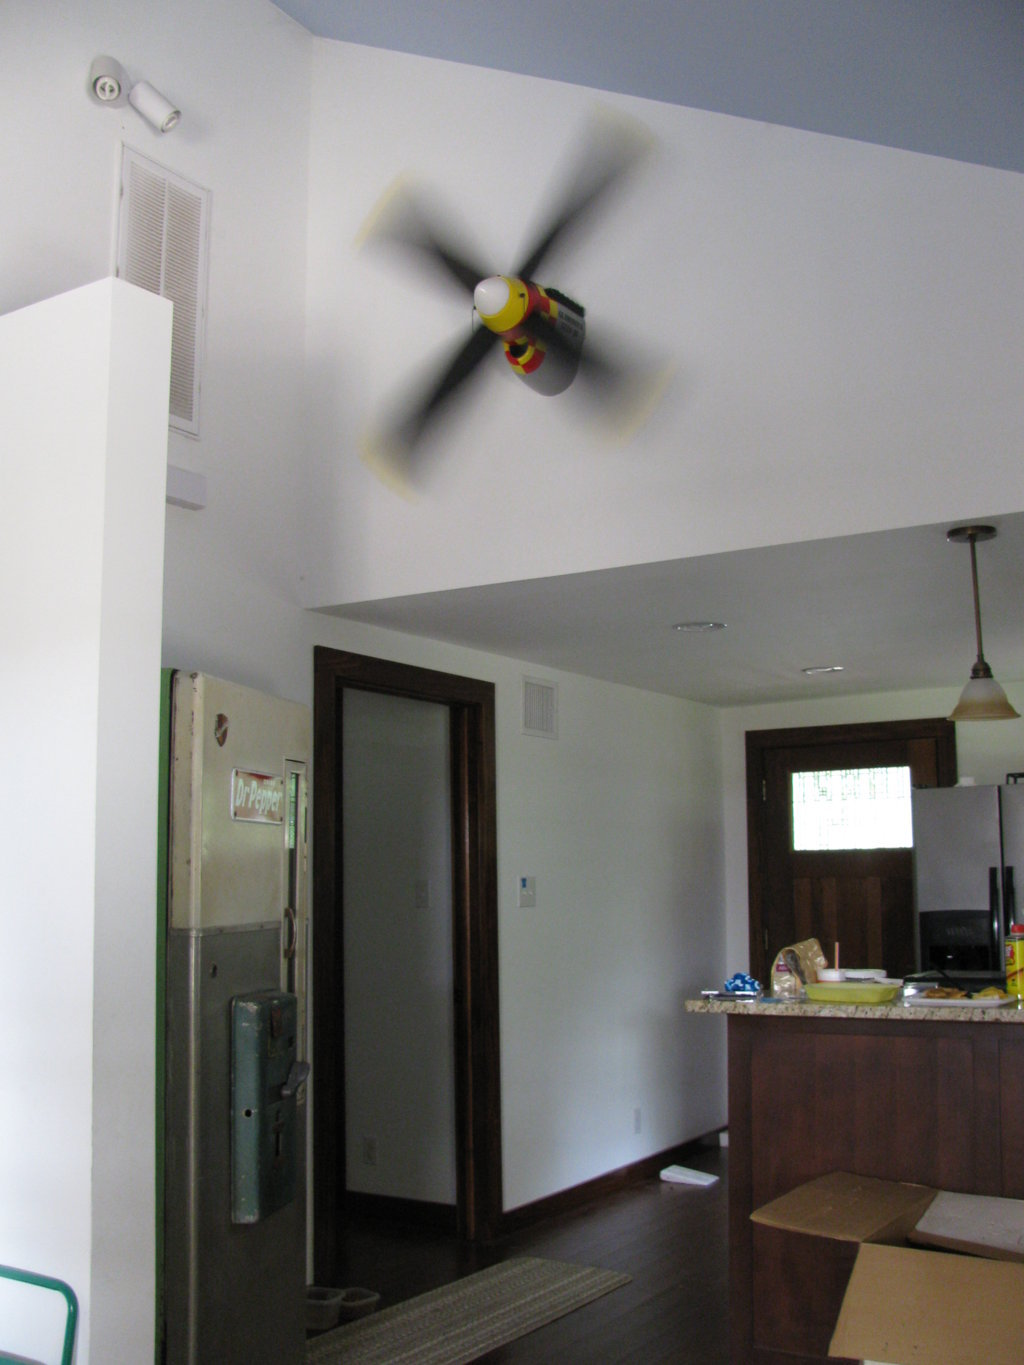 ... ceiling fan - on the wall. That's a vintage Dr.Pepper machine on the